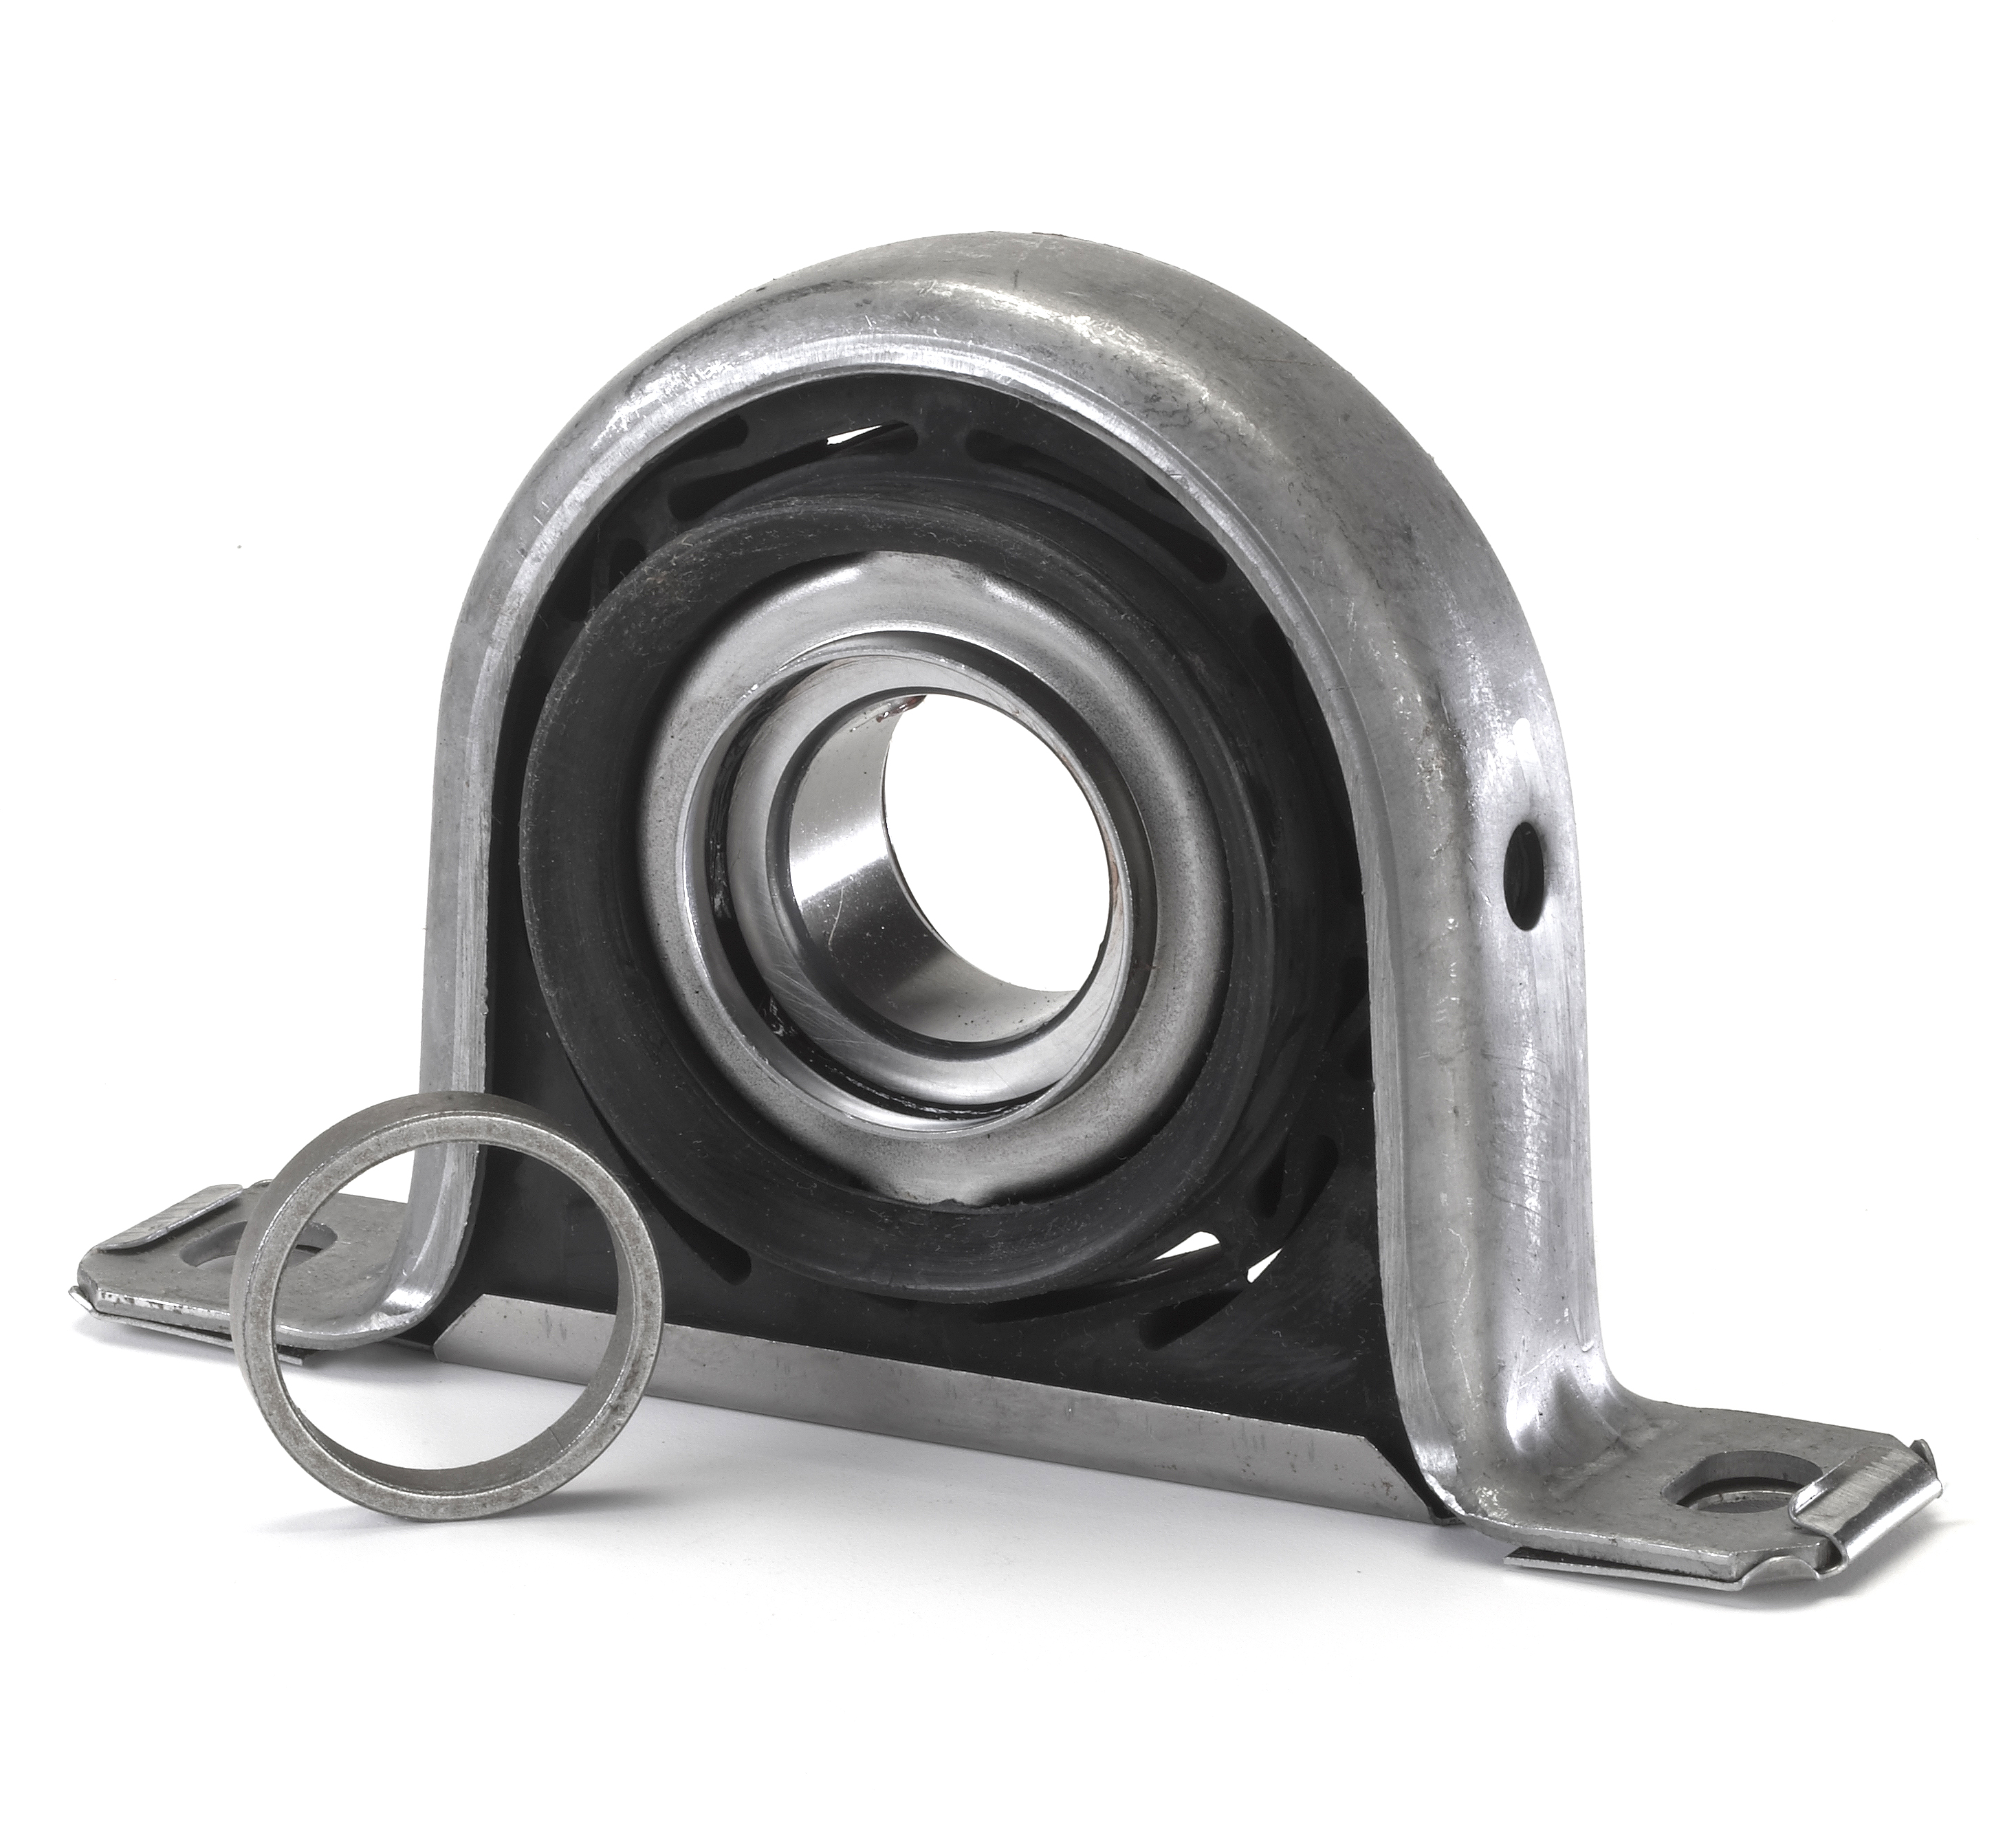 SKF adds to driveshaft support bearings line